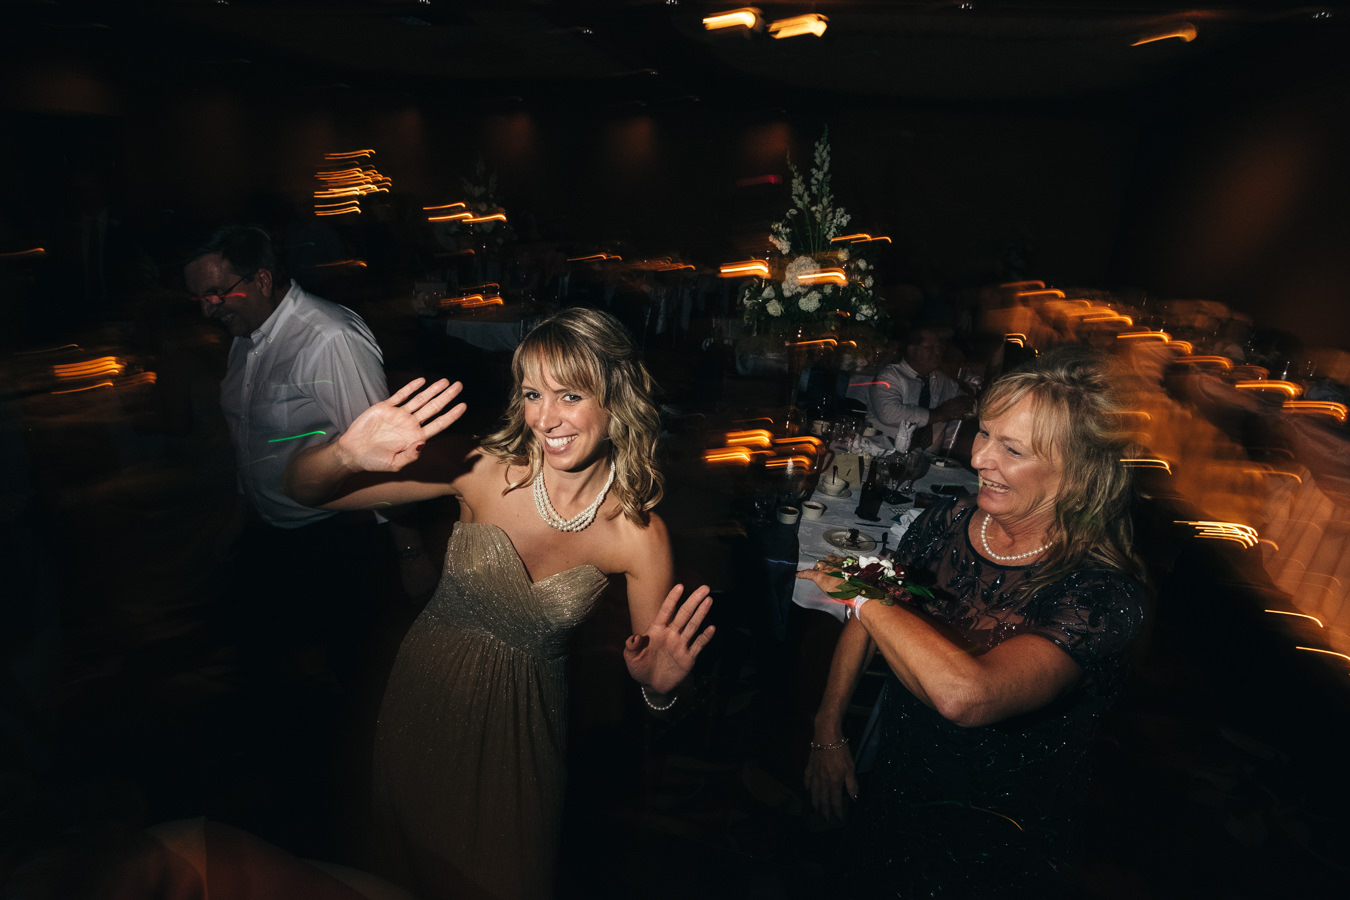 Guests dance at wedding reception at The Pinnacle in Maumee, Ohio.